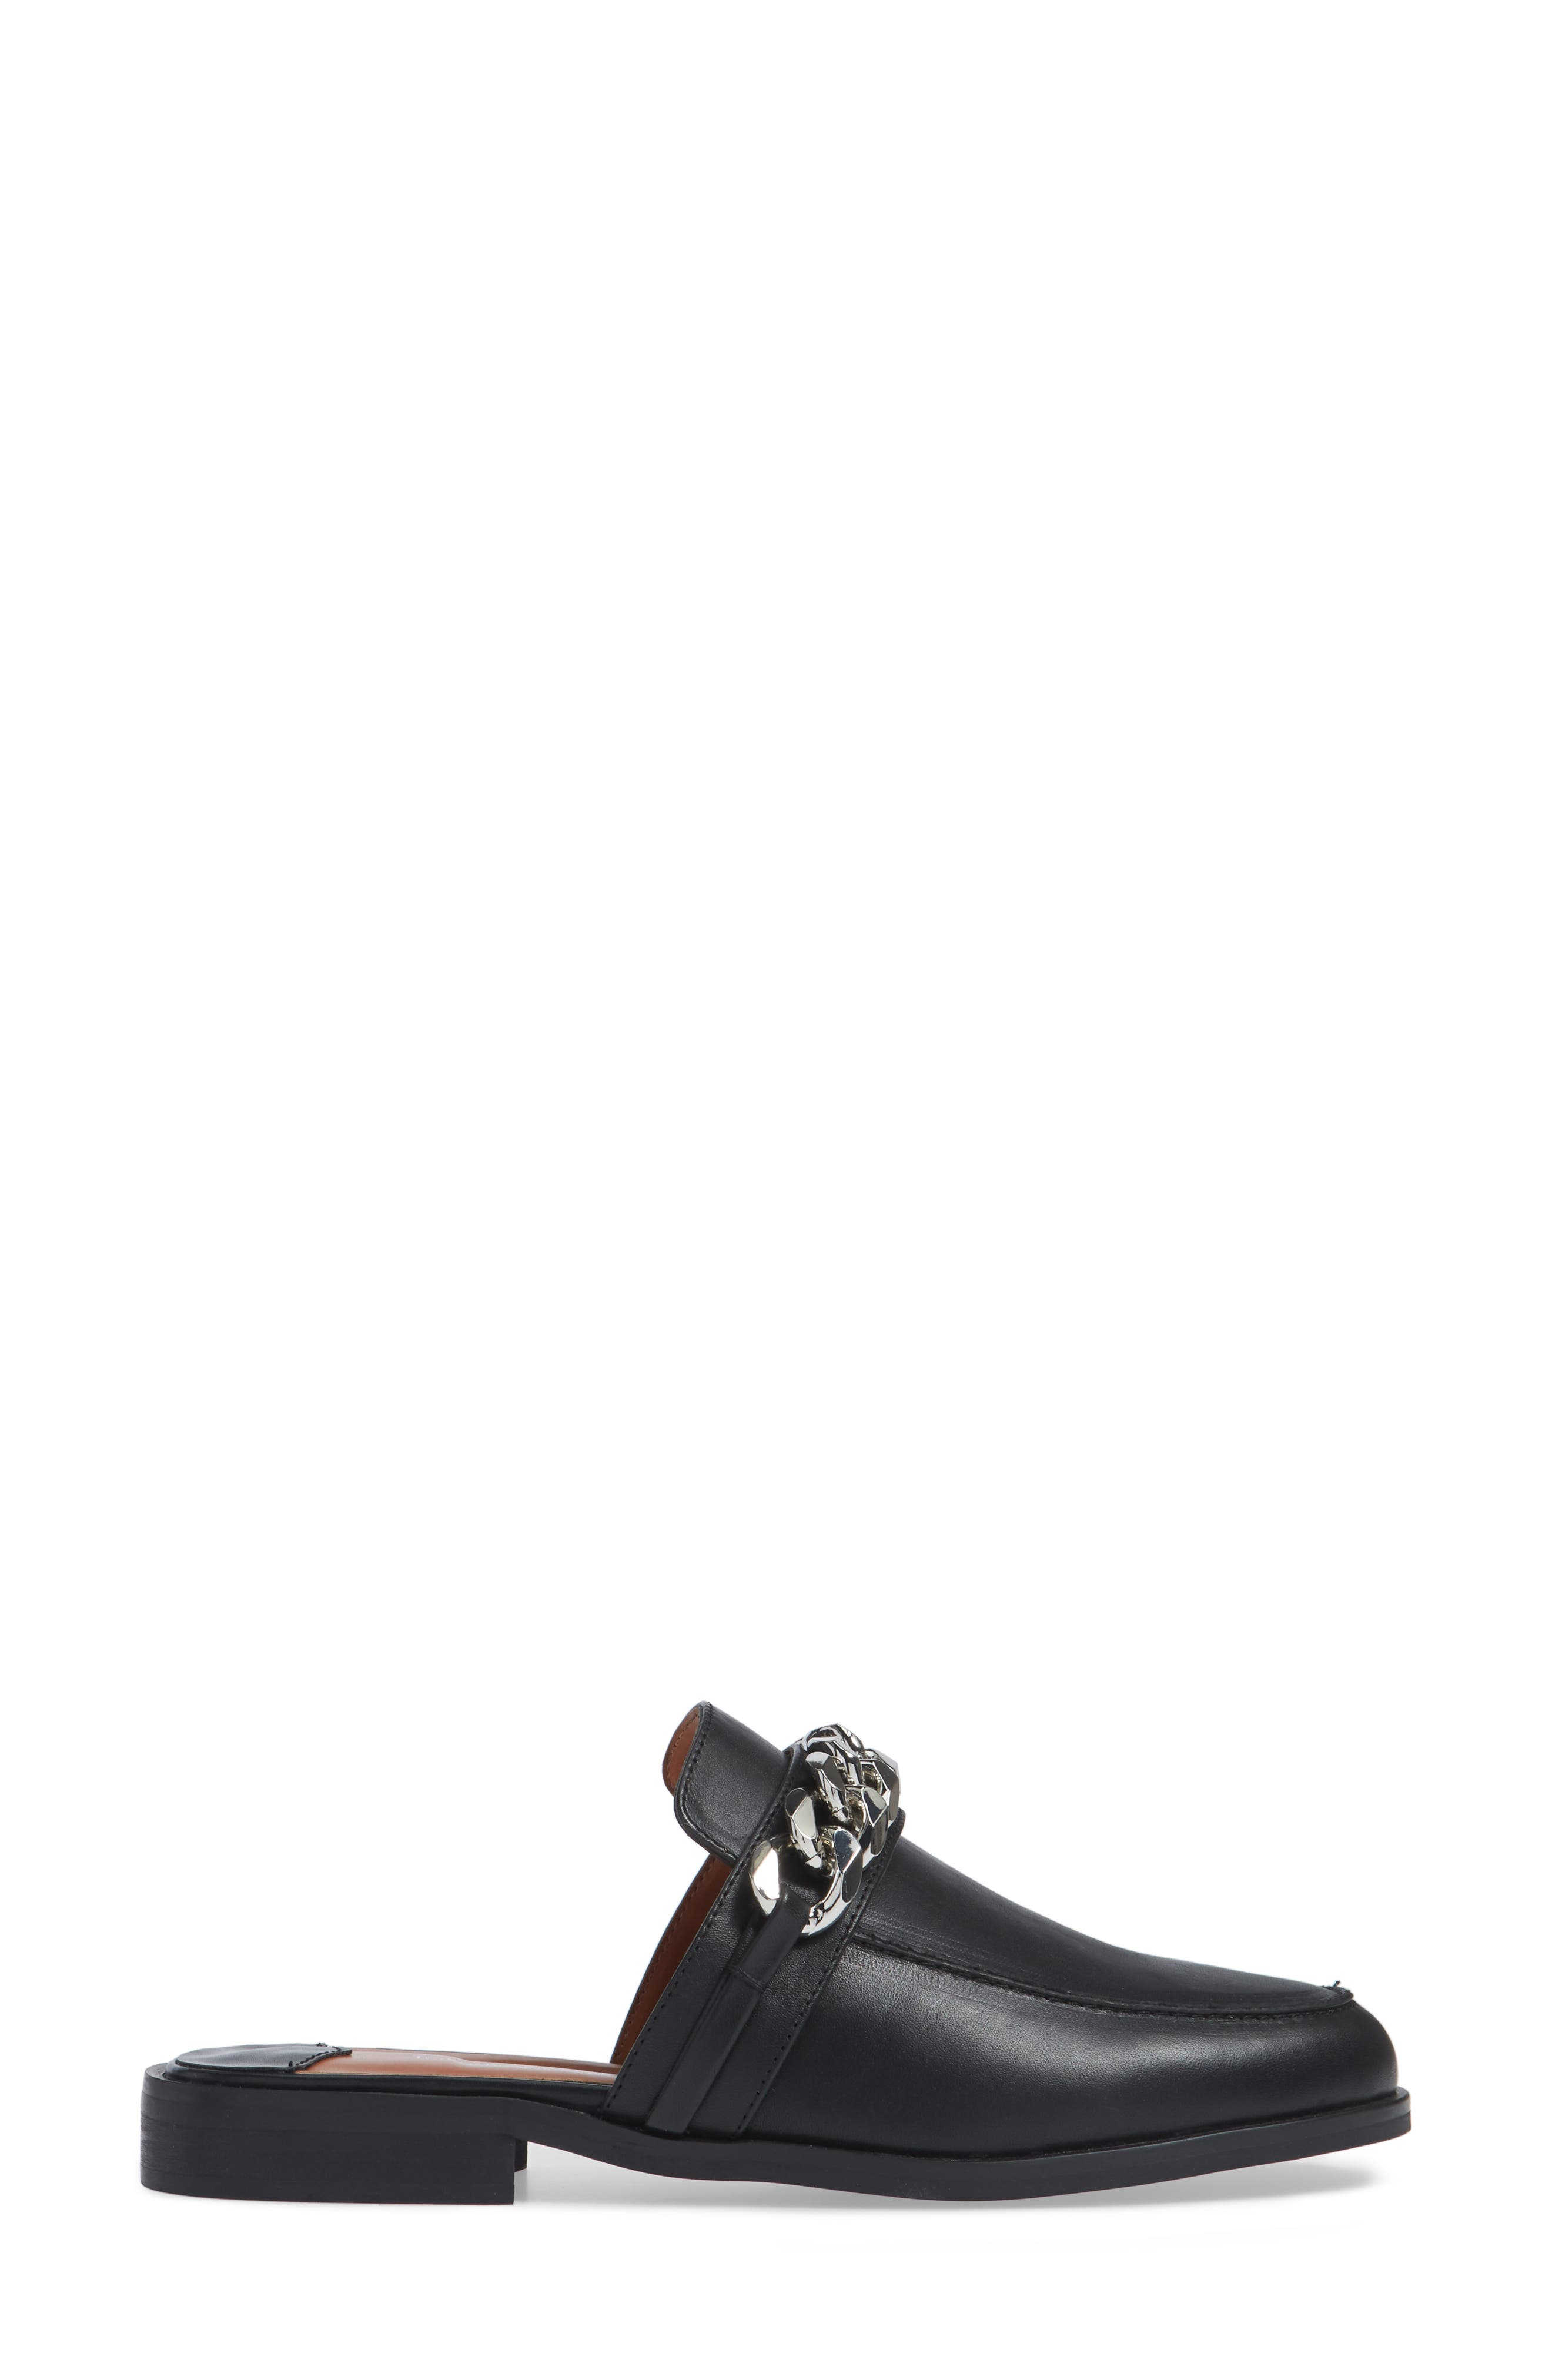 TONY BIANCO,                             Dion Mule,                             Alternate thumbnail 3, color,                             BLACK SMOOTH LEATHER